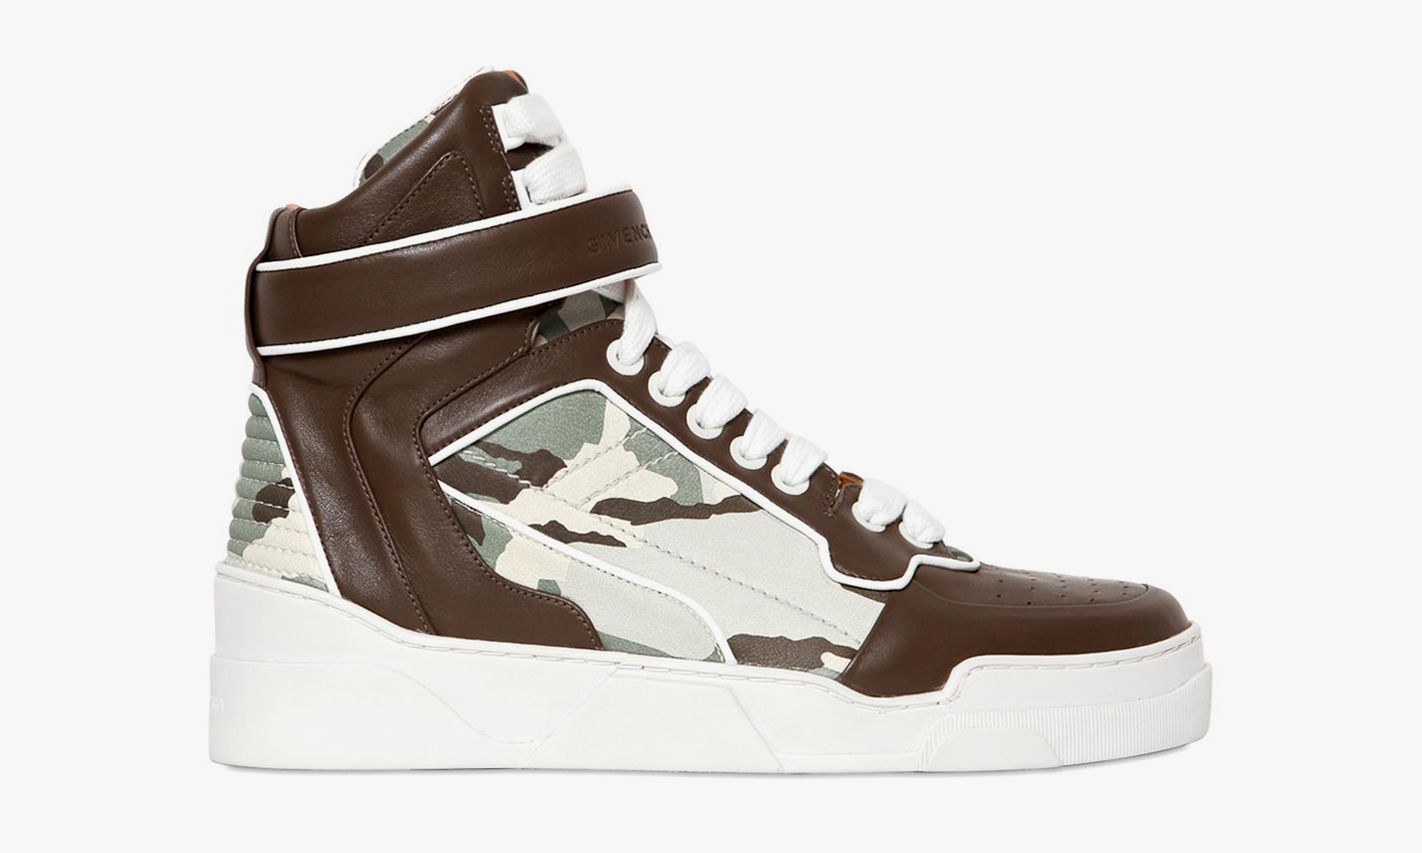 givenchy-springsummer-2014-camouflage-leather-high-top-sneakers-00